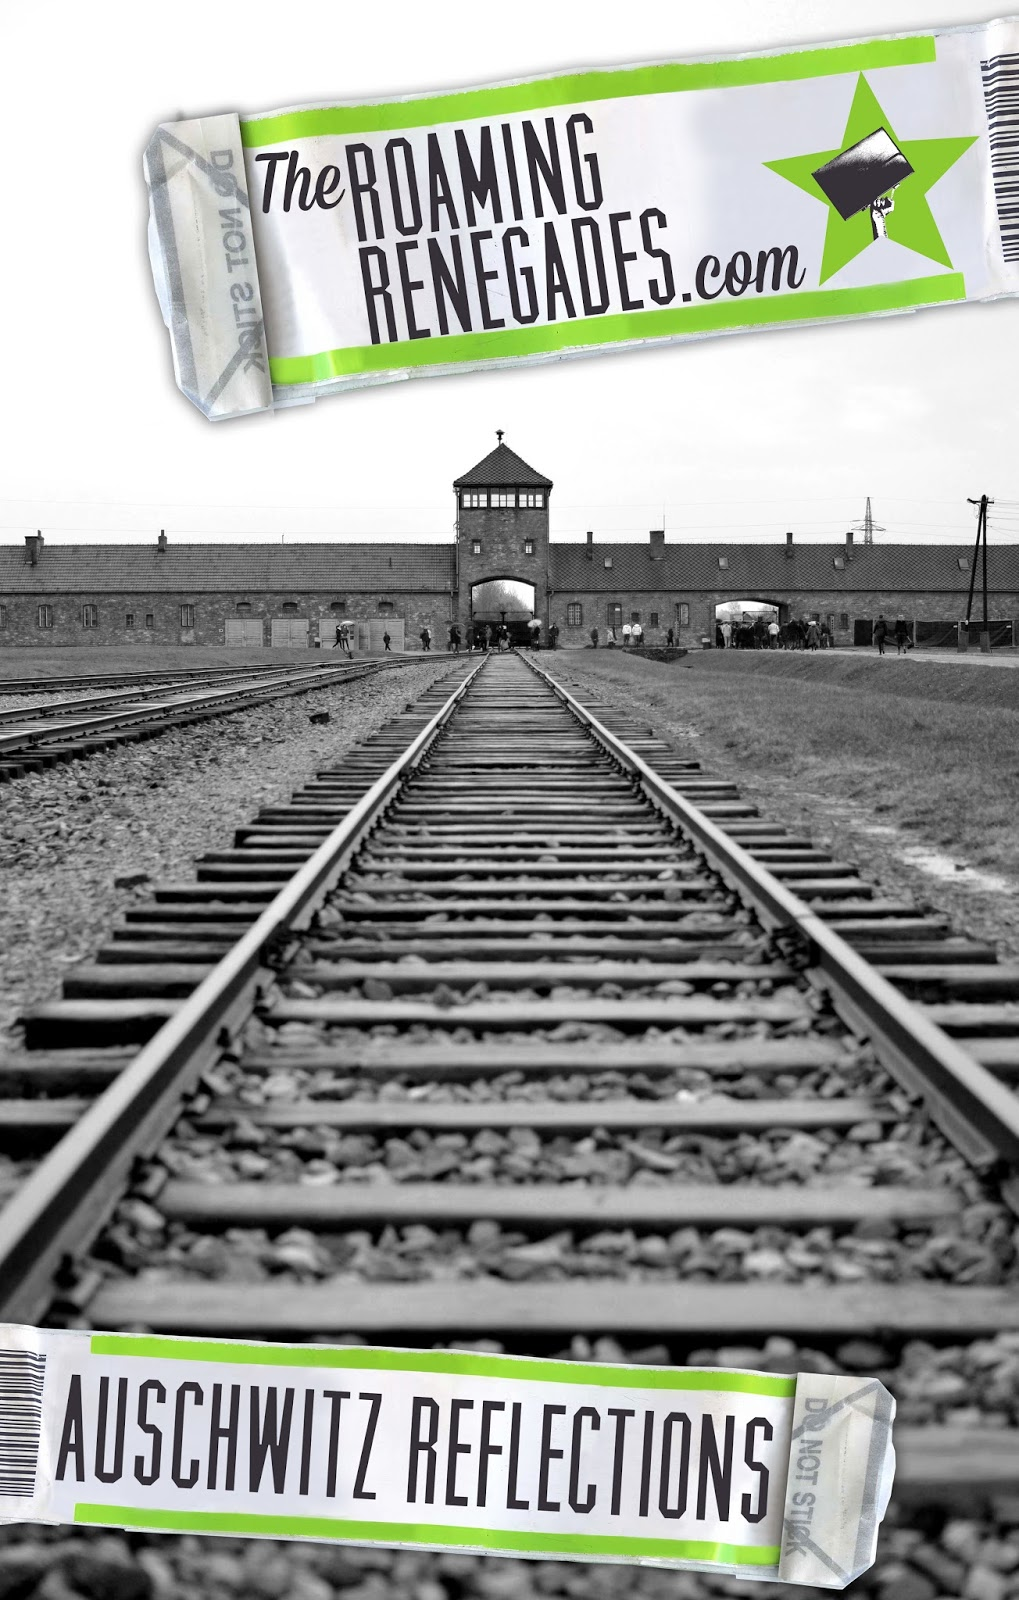 Auschwitz, Birkenau, concentration camp, poland, nazi, death, death camp, train tracks, death gate, black and white, world war 2, ww2, hilter, germany, How to get to Auschwitz, Auschwitz hair, gas chamber, history, reflections on Auschwitz, experiences, travel, traveling, europe, bus to Auschwitz, train to Auschwitz, Auschwitz tours, Auschwitz guides, Auschwitz reports, photography, Halt Stouj!, barbed wire, fences, Auschwitz swimming pool, Auschwitz beauty, Arbeit macht frei, work makes you free,